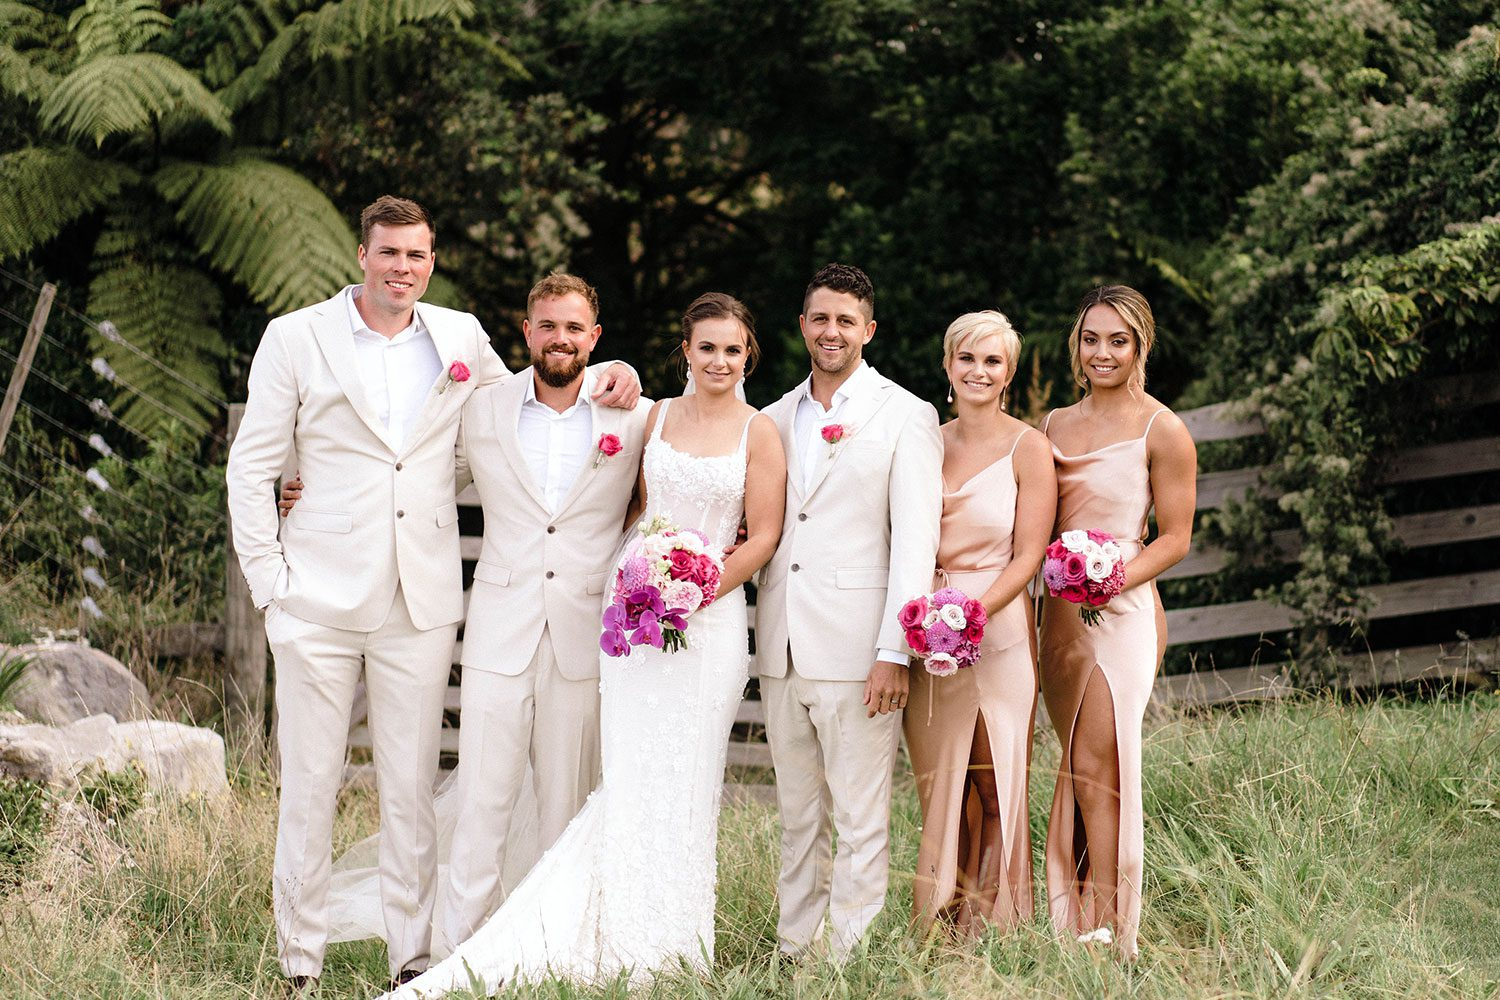 Bride wears bespoke E'More lace gown with boned bodice with hand beaded flower applique and full lace train by Auckland wedding dress maker Vinka designs - with bridesmaids and groomsmen in field